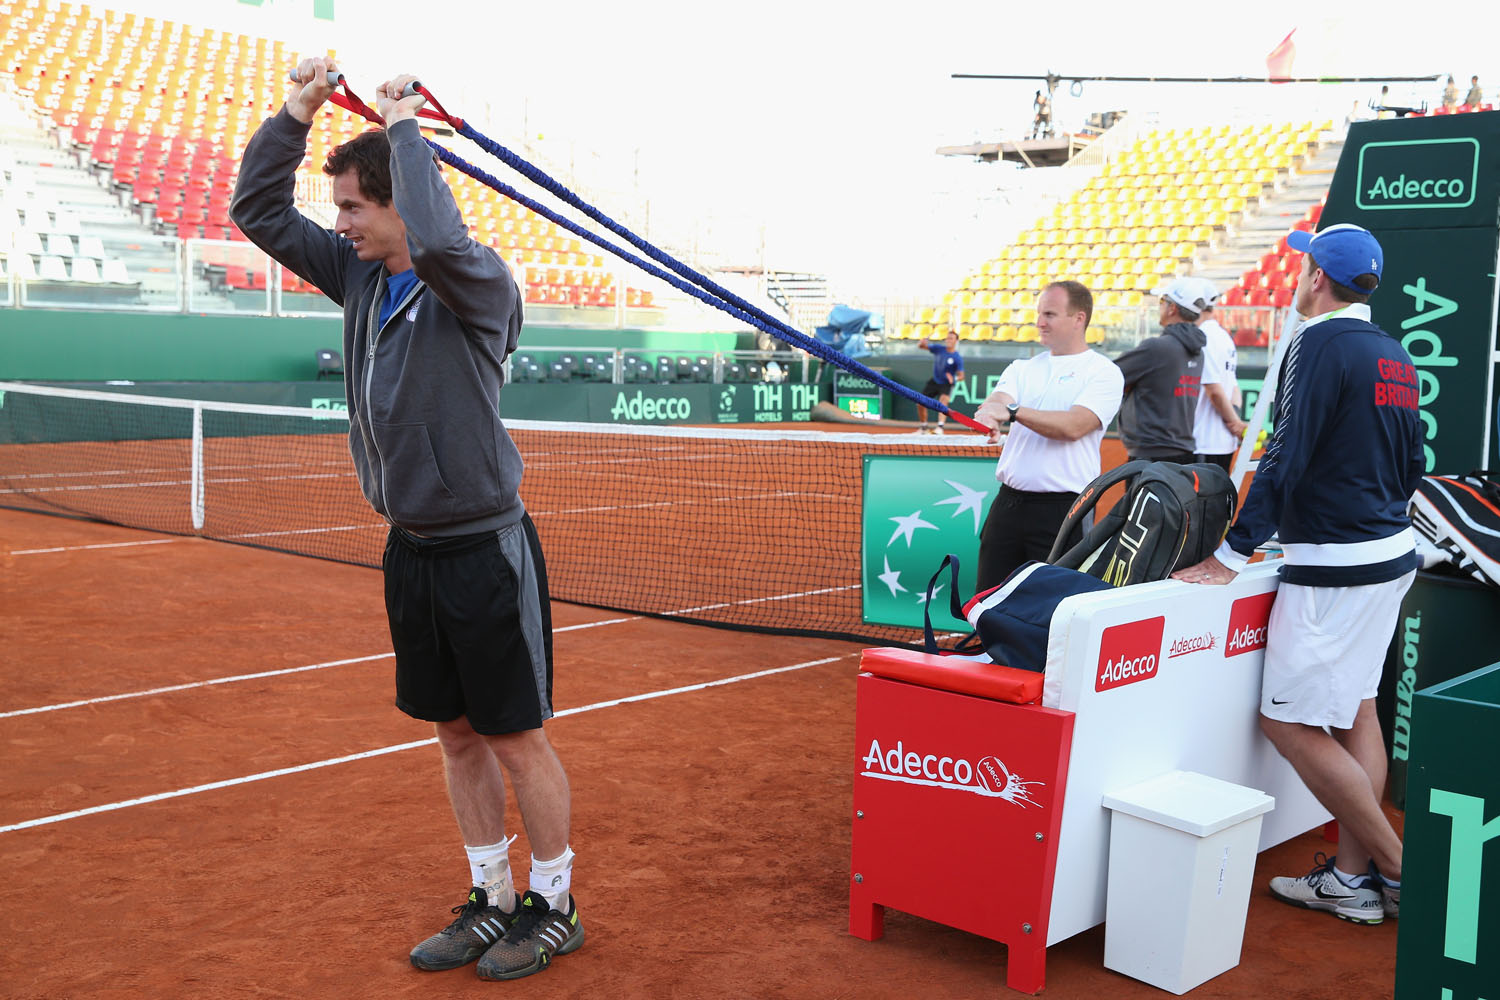 Andy Murray warms up for a late practice session watched by his team captain Leon Smith prior to the Davis Cup World Group Quarter Final match between Italy and Great Britain at Tennis Club Napoli in April 2014.